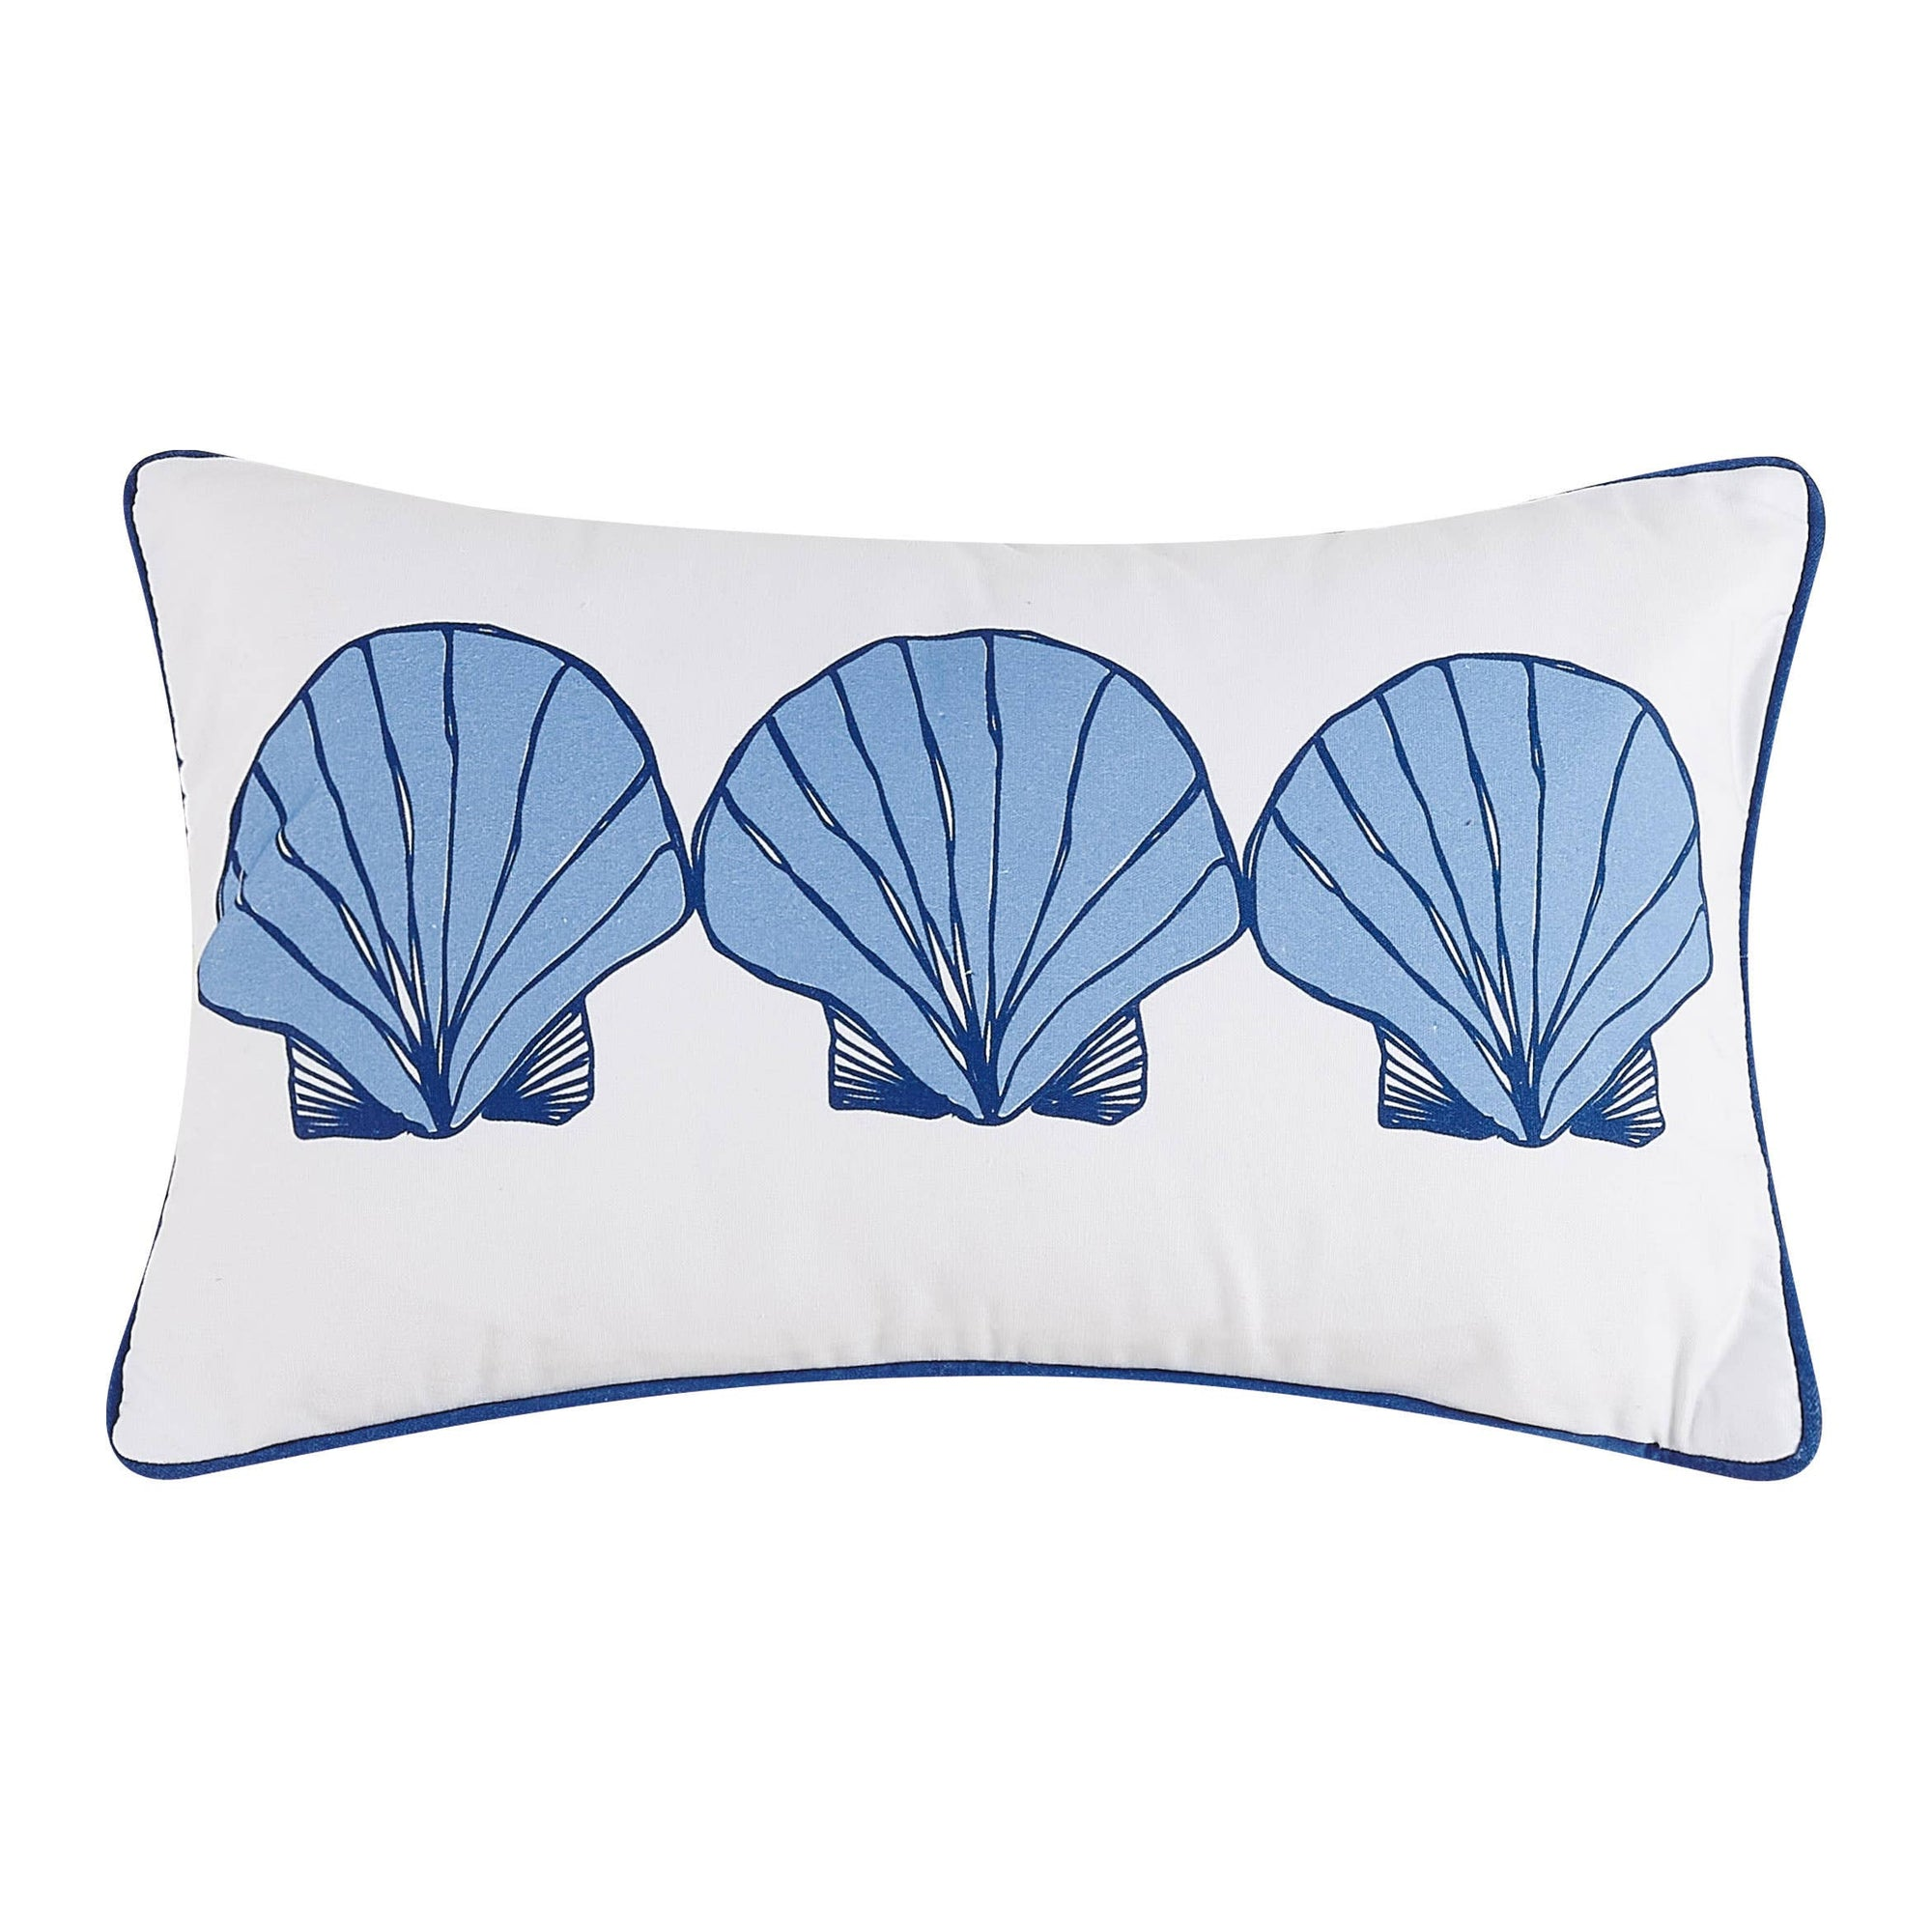 Scallops Printed Pillow Small